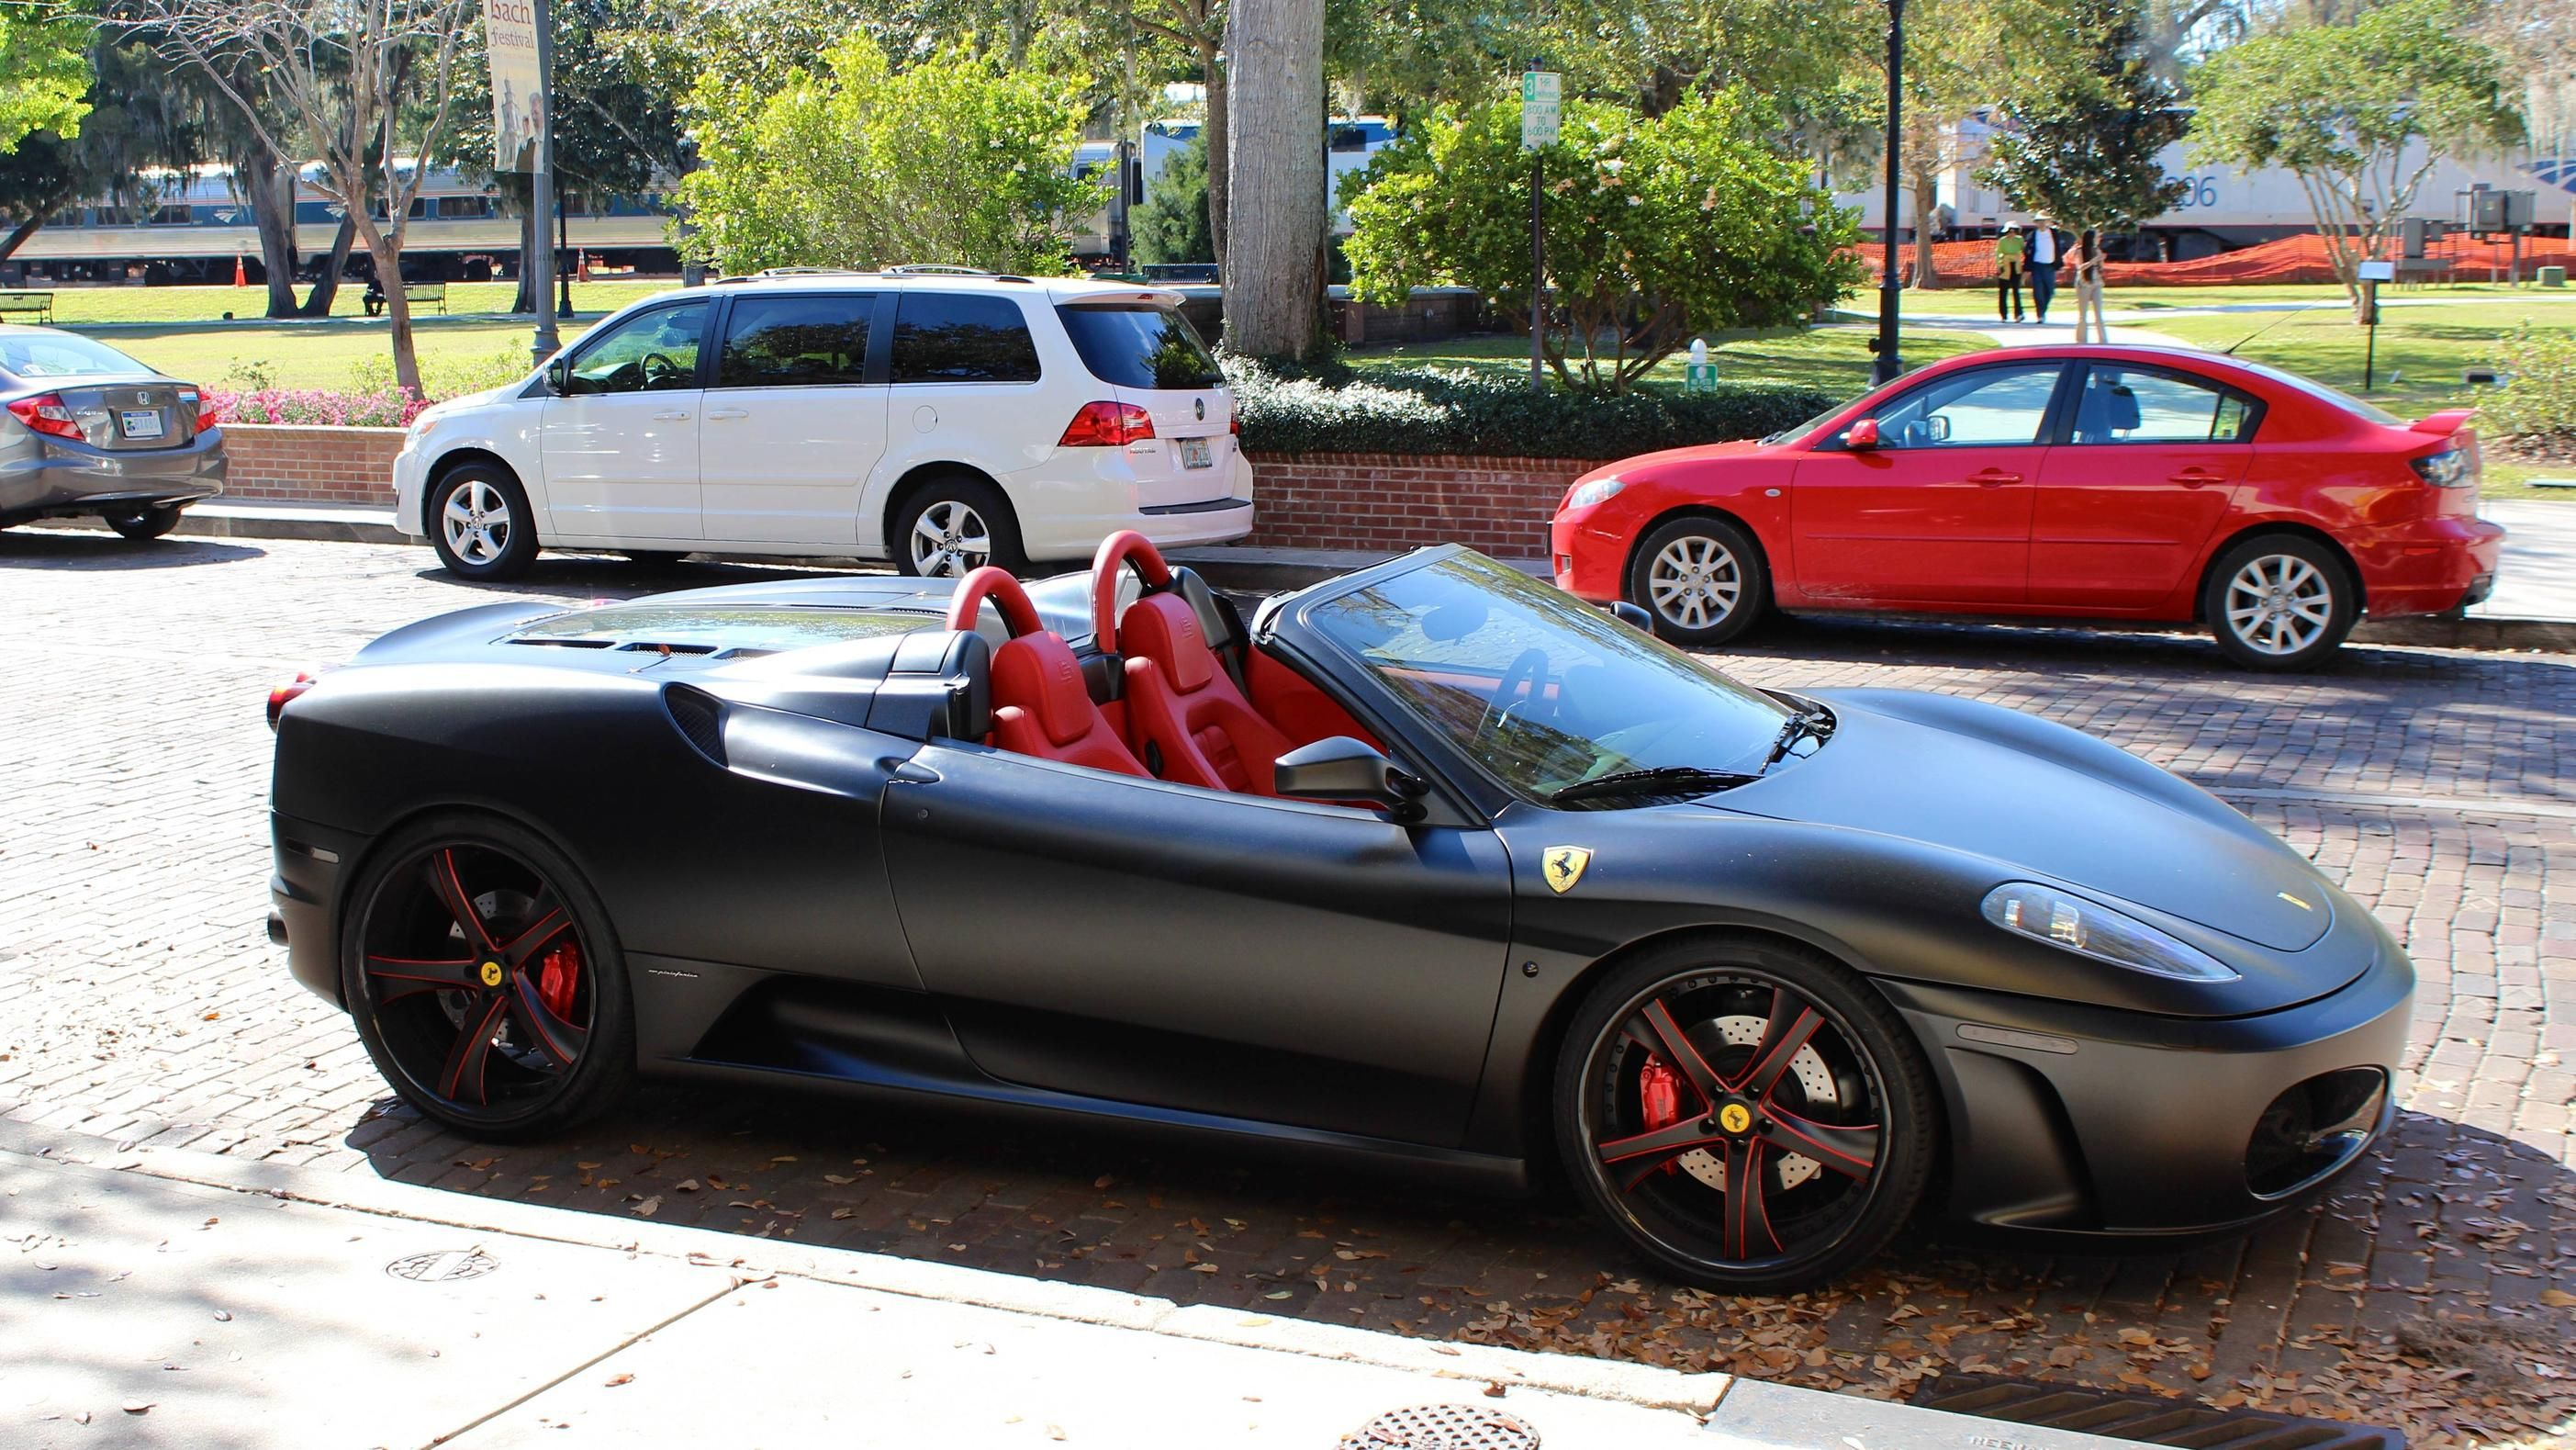 Matte Black Ferrari F430 In Winter Park FL. -Like Cars? We